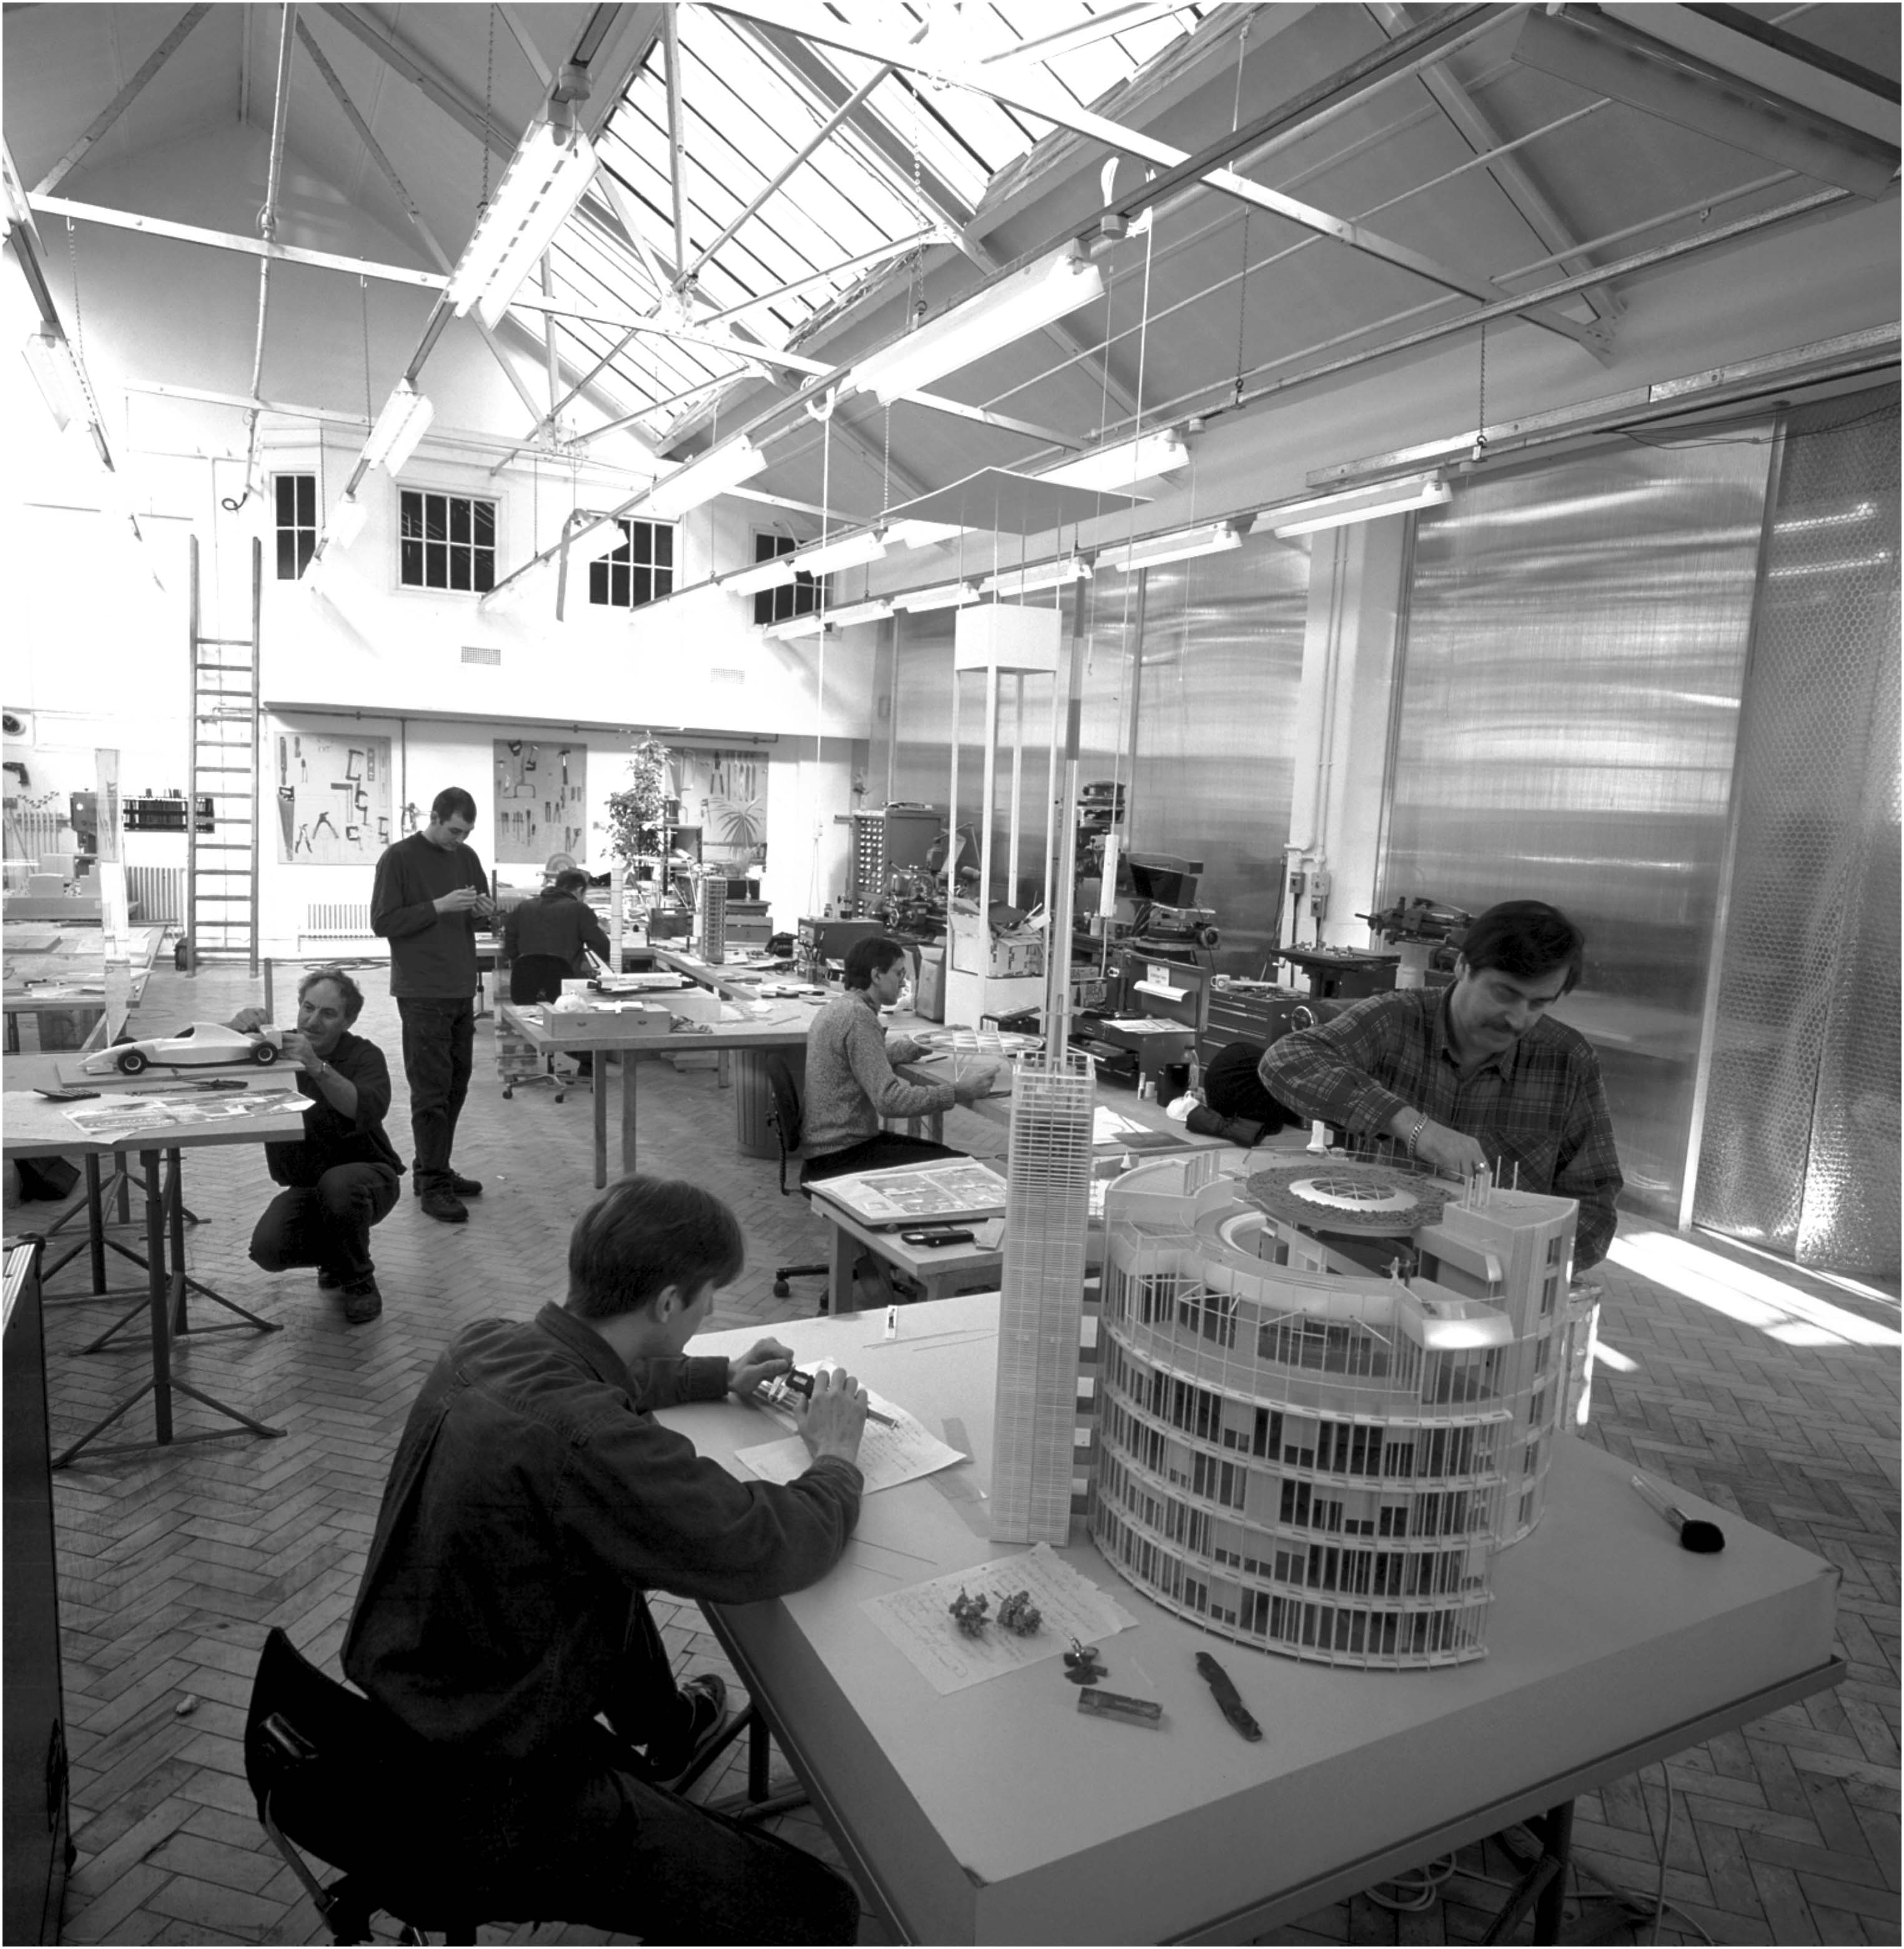 The Architectural Model: Exploring Scale And Vision At The Architecture Centre January 2015